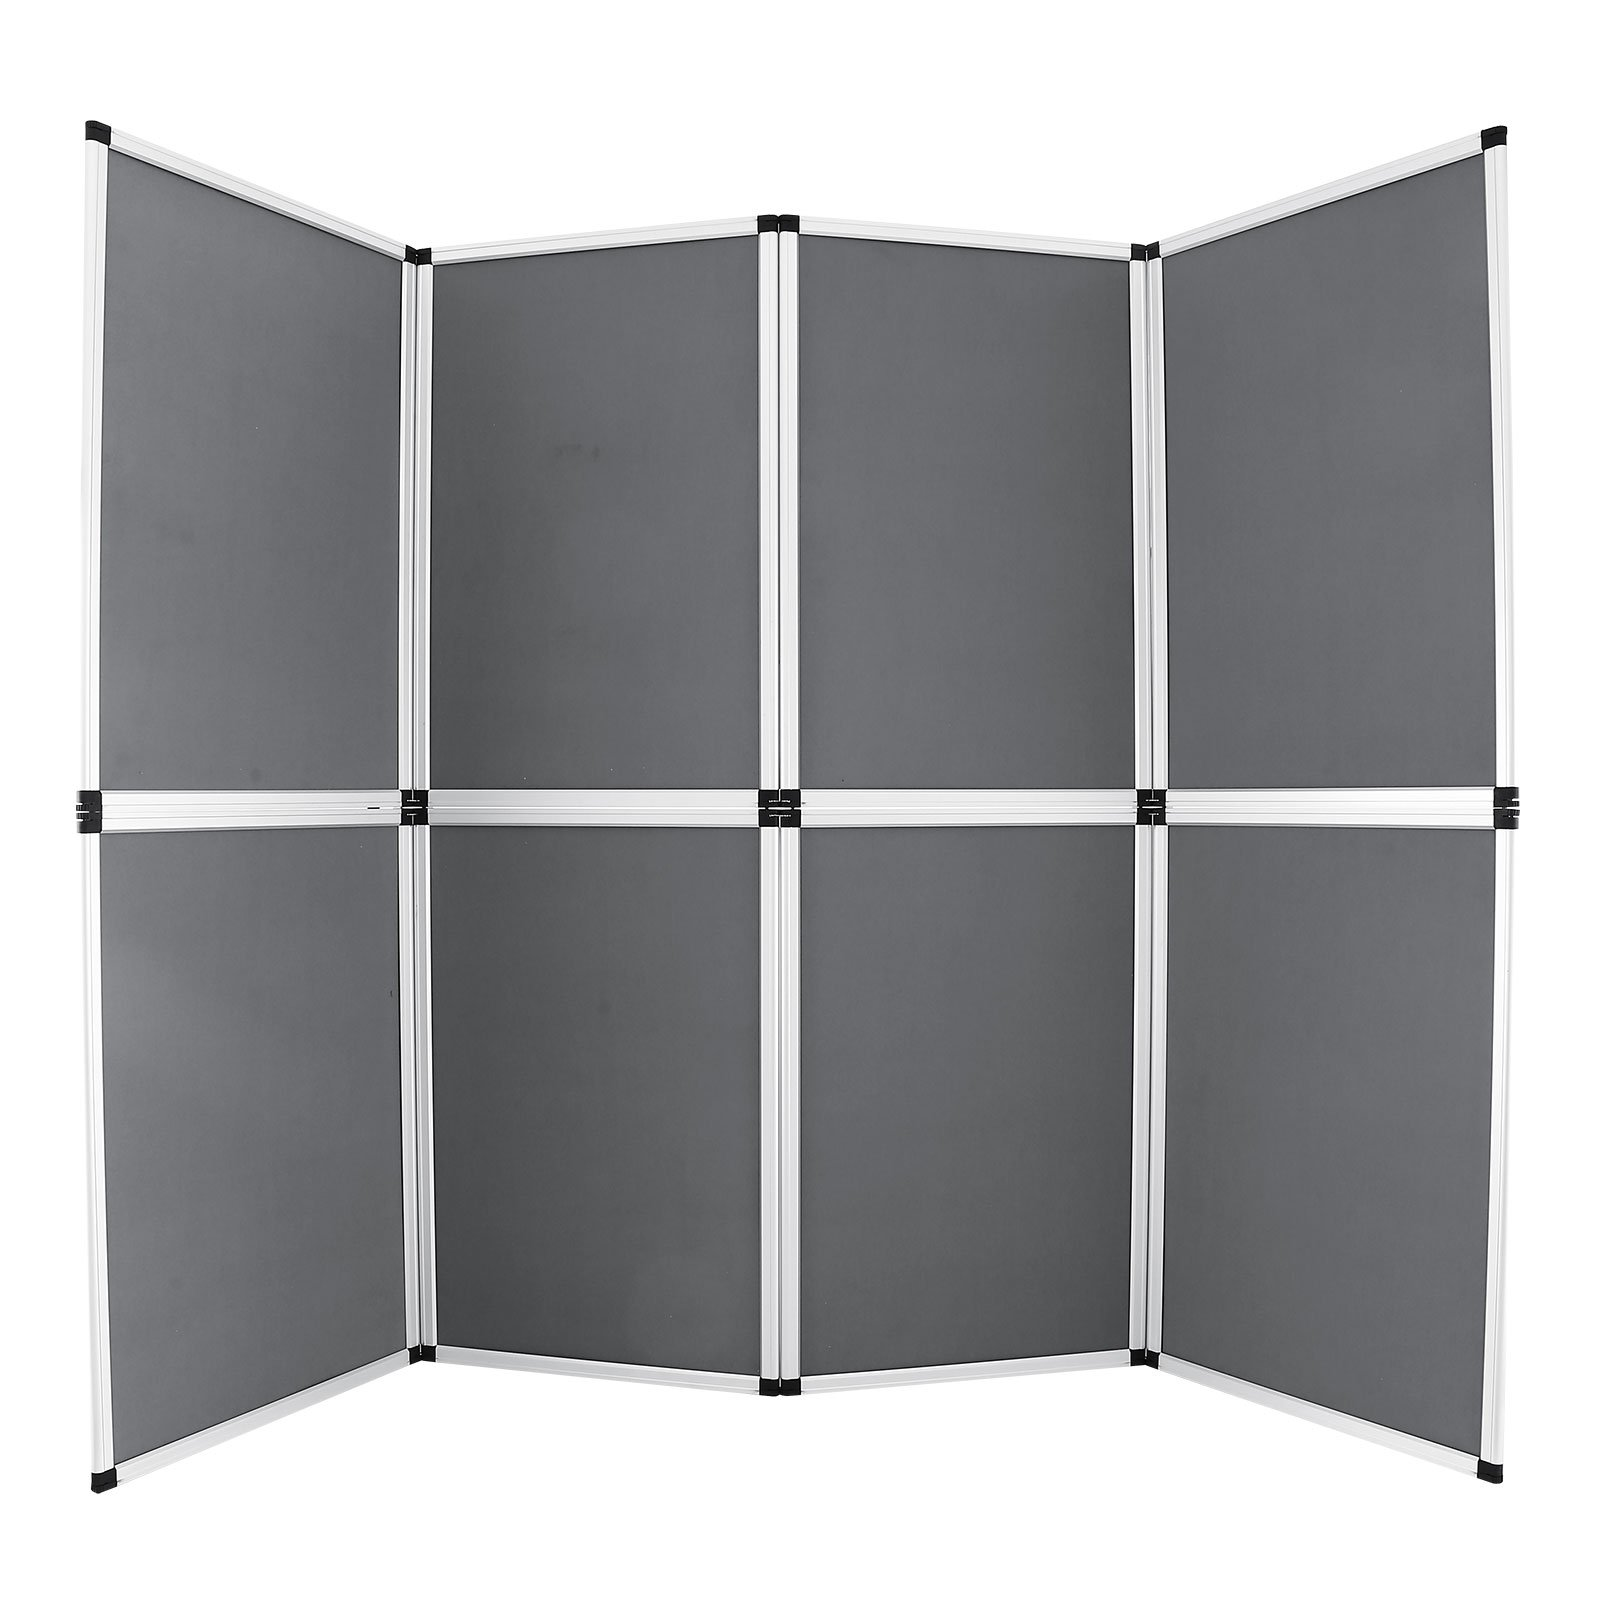 VEVOR Trade Show Display 8 Panels Display Panel 94x71Inch Aluminum Alloy Frames Folding Trade Show Display with Gray Receptive Fabric (8Panels 94x71Inch) by VEVOR